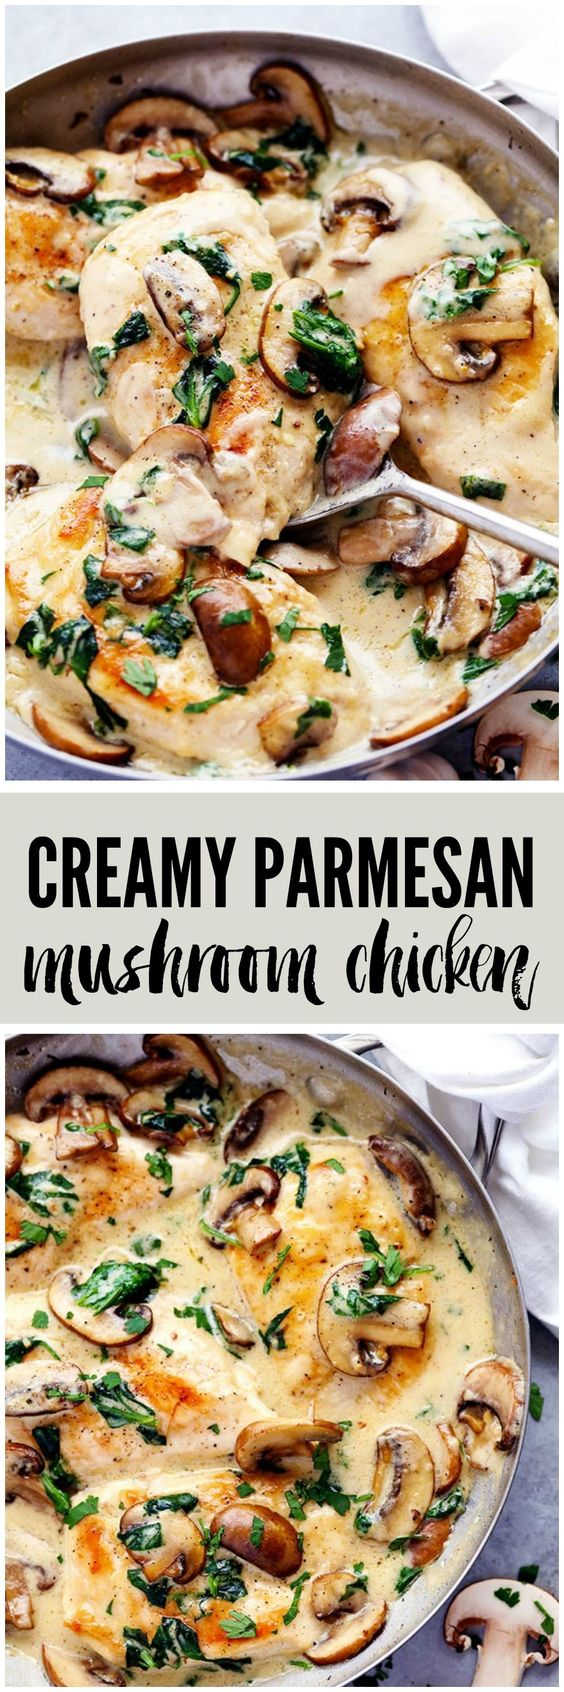 Creamy Parmesan Garlic Mushroom Chicken is ready in just 30 minutes and the parmesan garlic sauce will wow the entire family! This will become a new favorite!